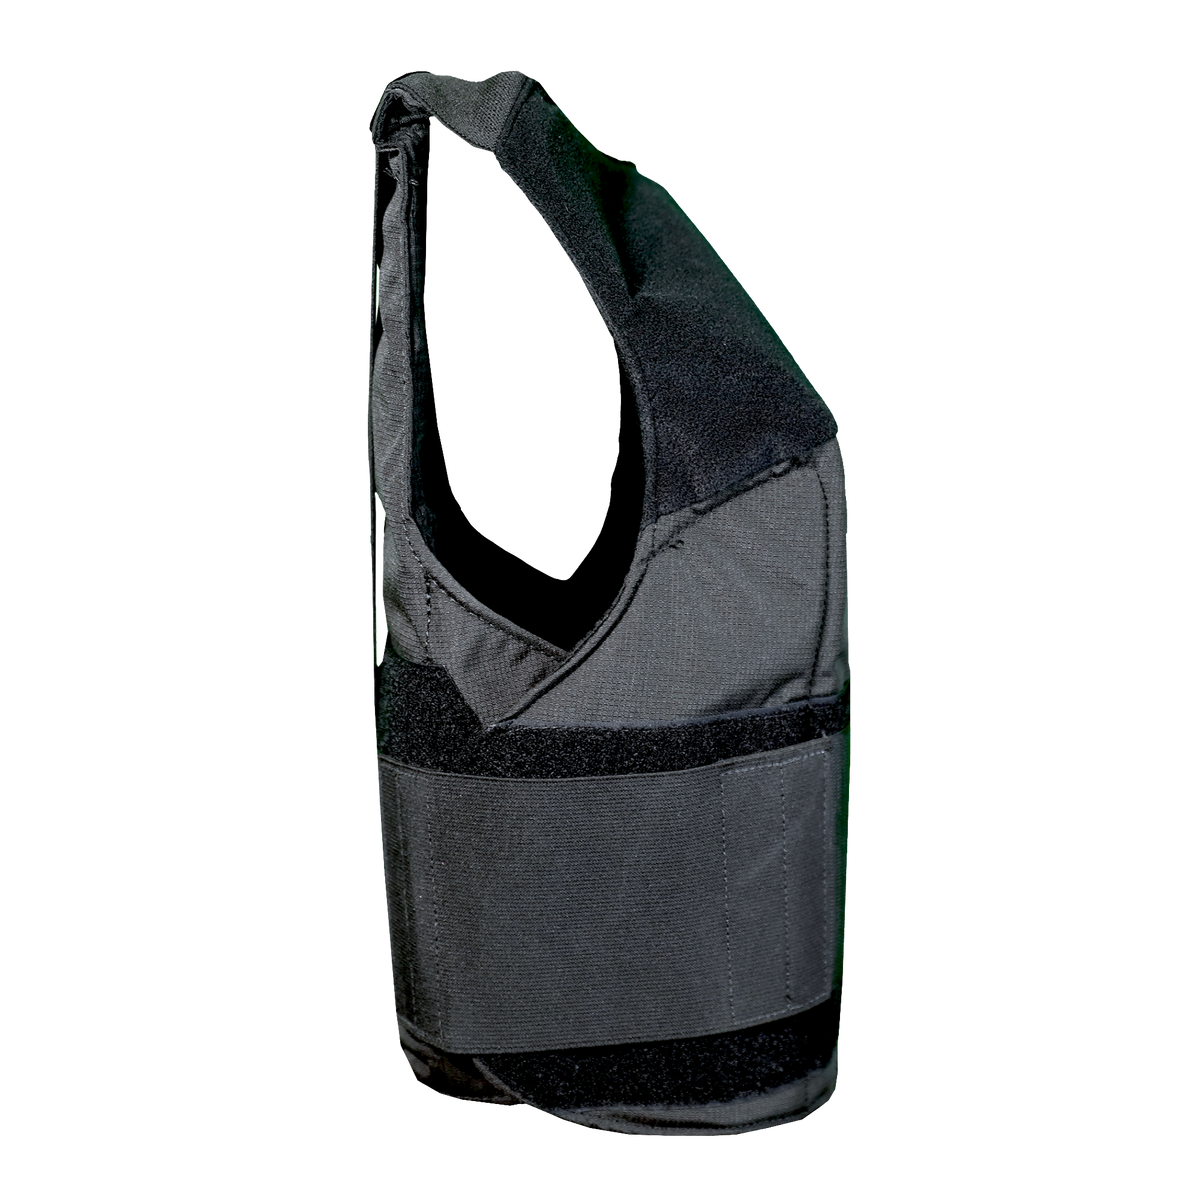 Citizen Armor V-Shield Ultra Conceal Female Vest side view